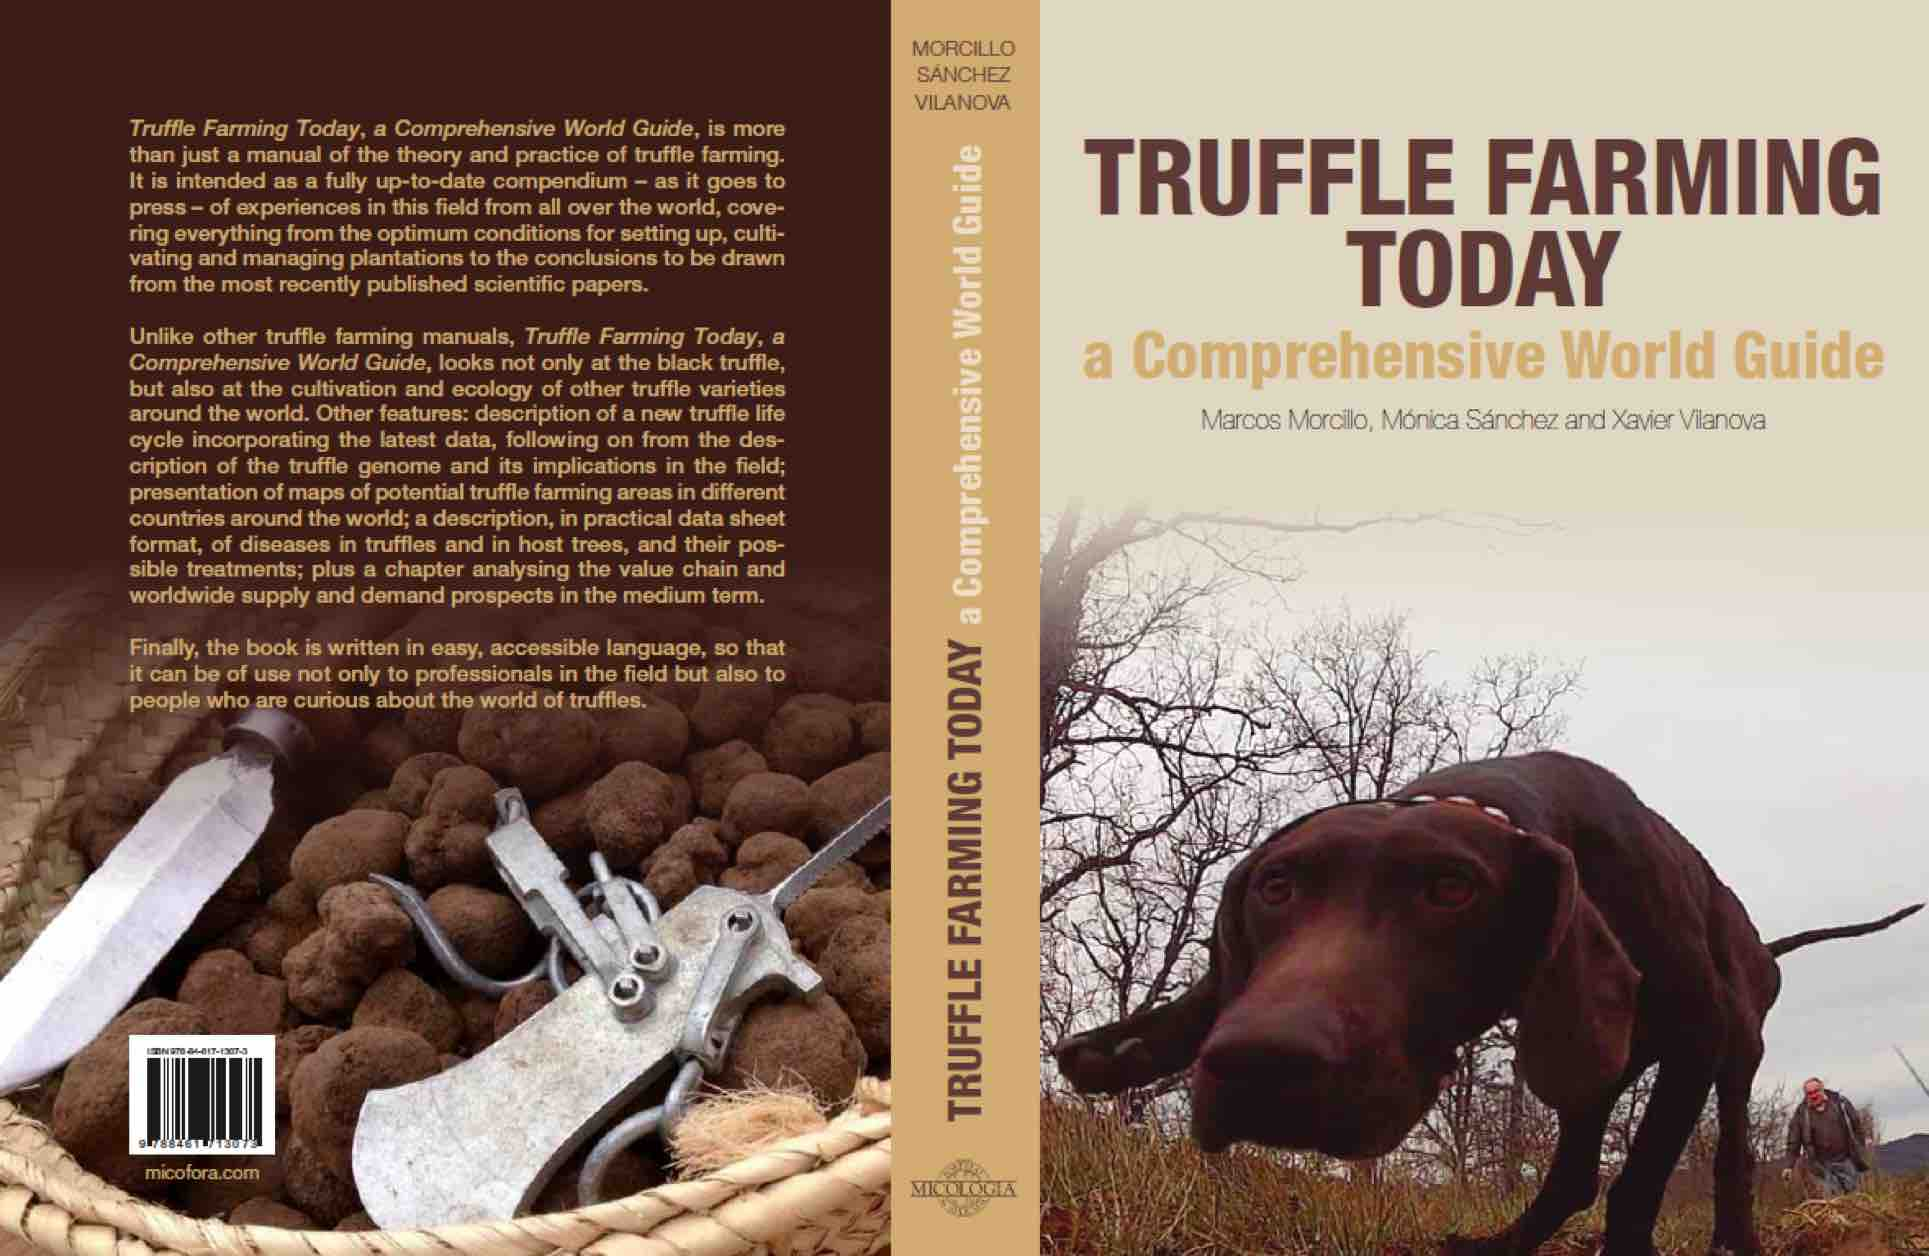 Truffle Farming Today. A comprehensive world guide